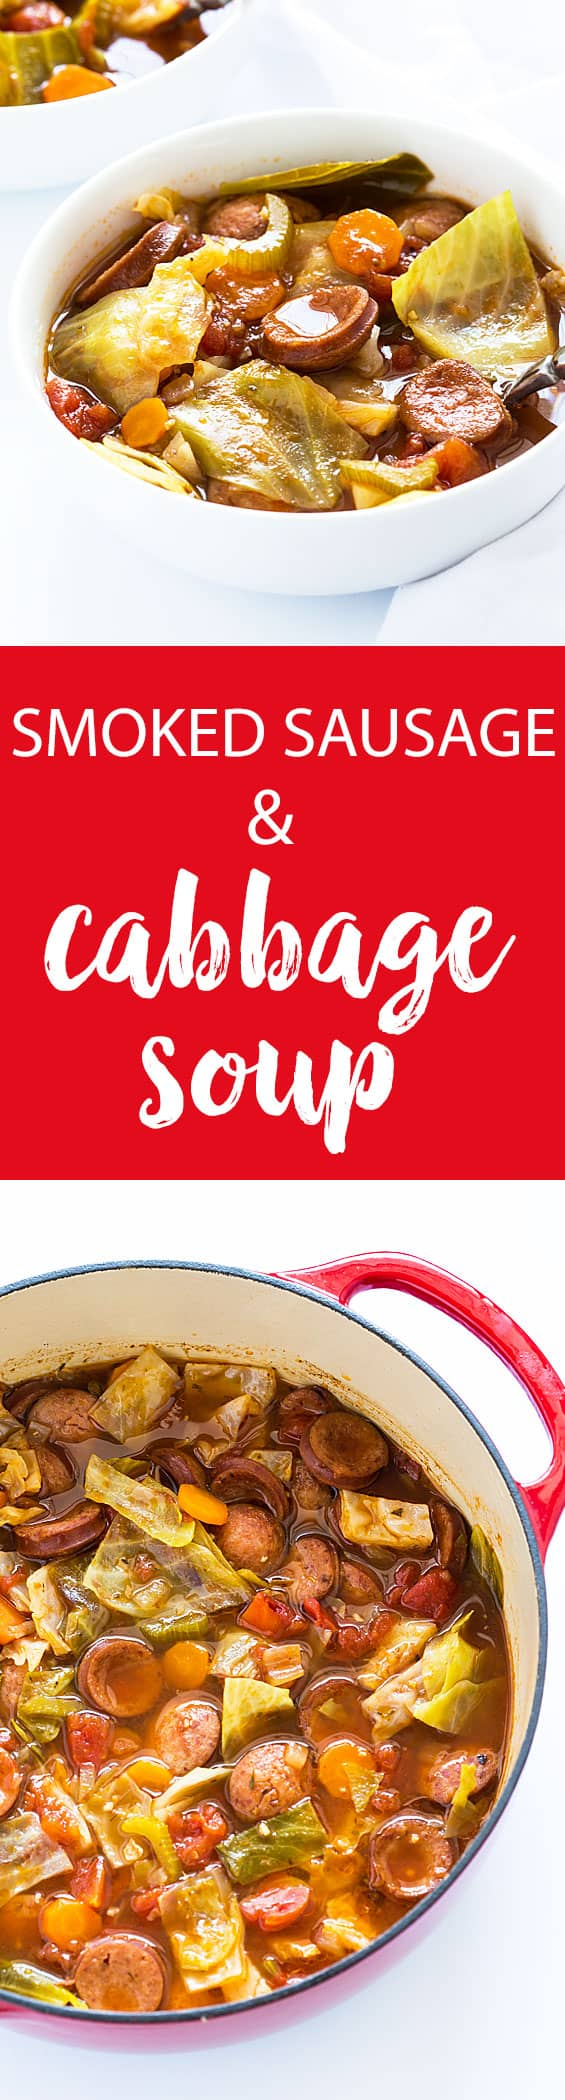 Two images of soup.  Text in center says smoked sausage and cabbage soup.